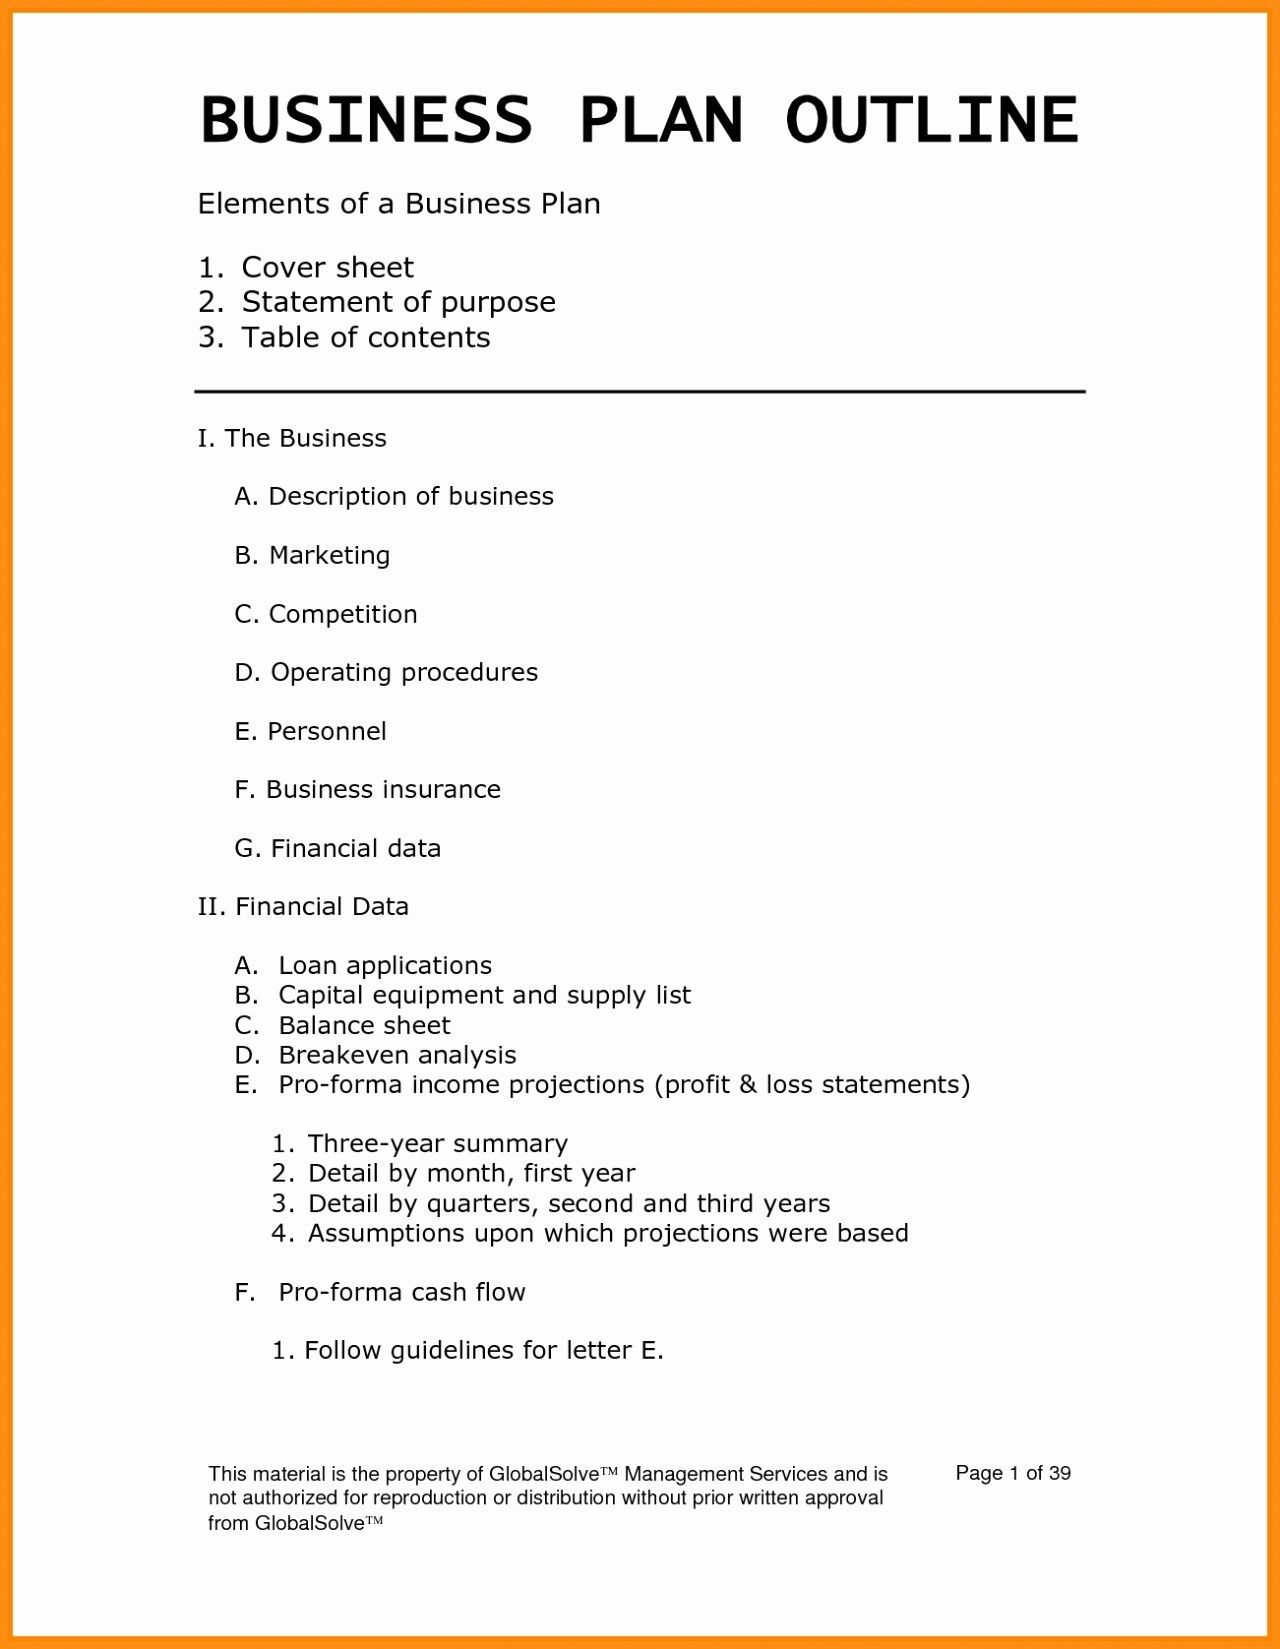 Download Valid Quick Business Plan Template Free Can Save At